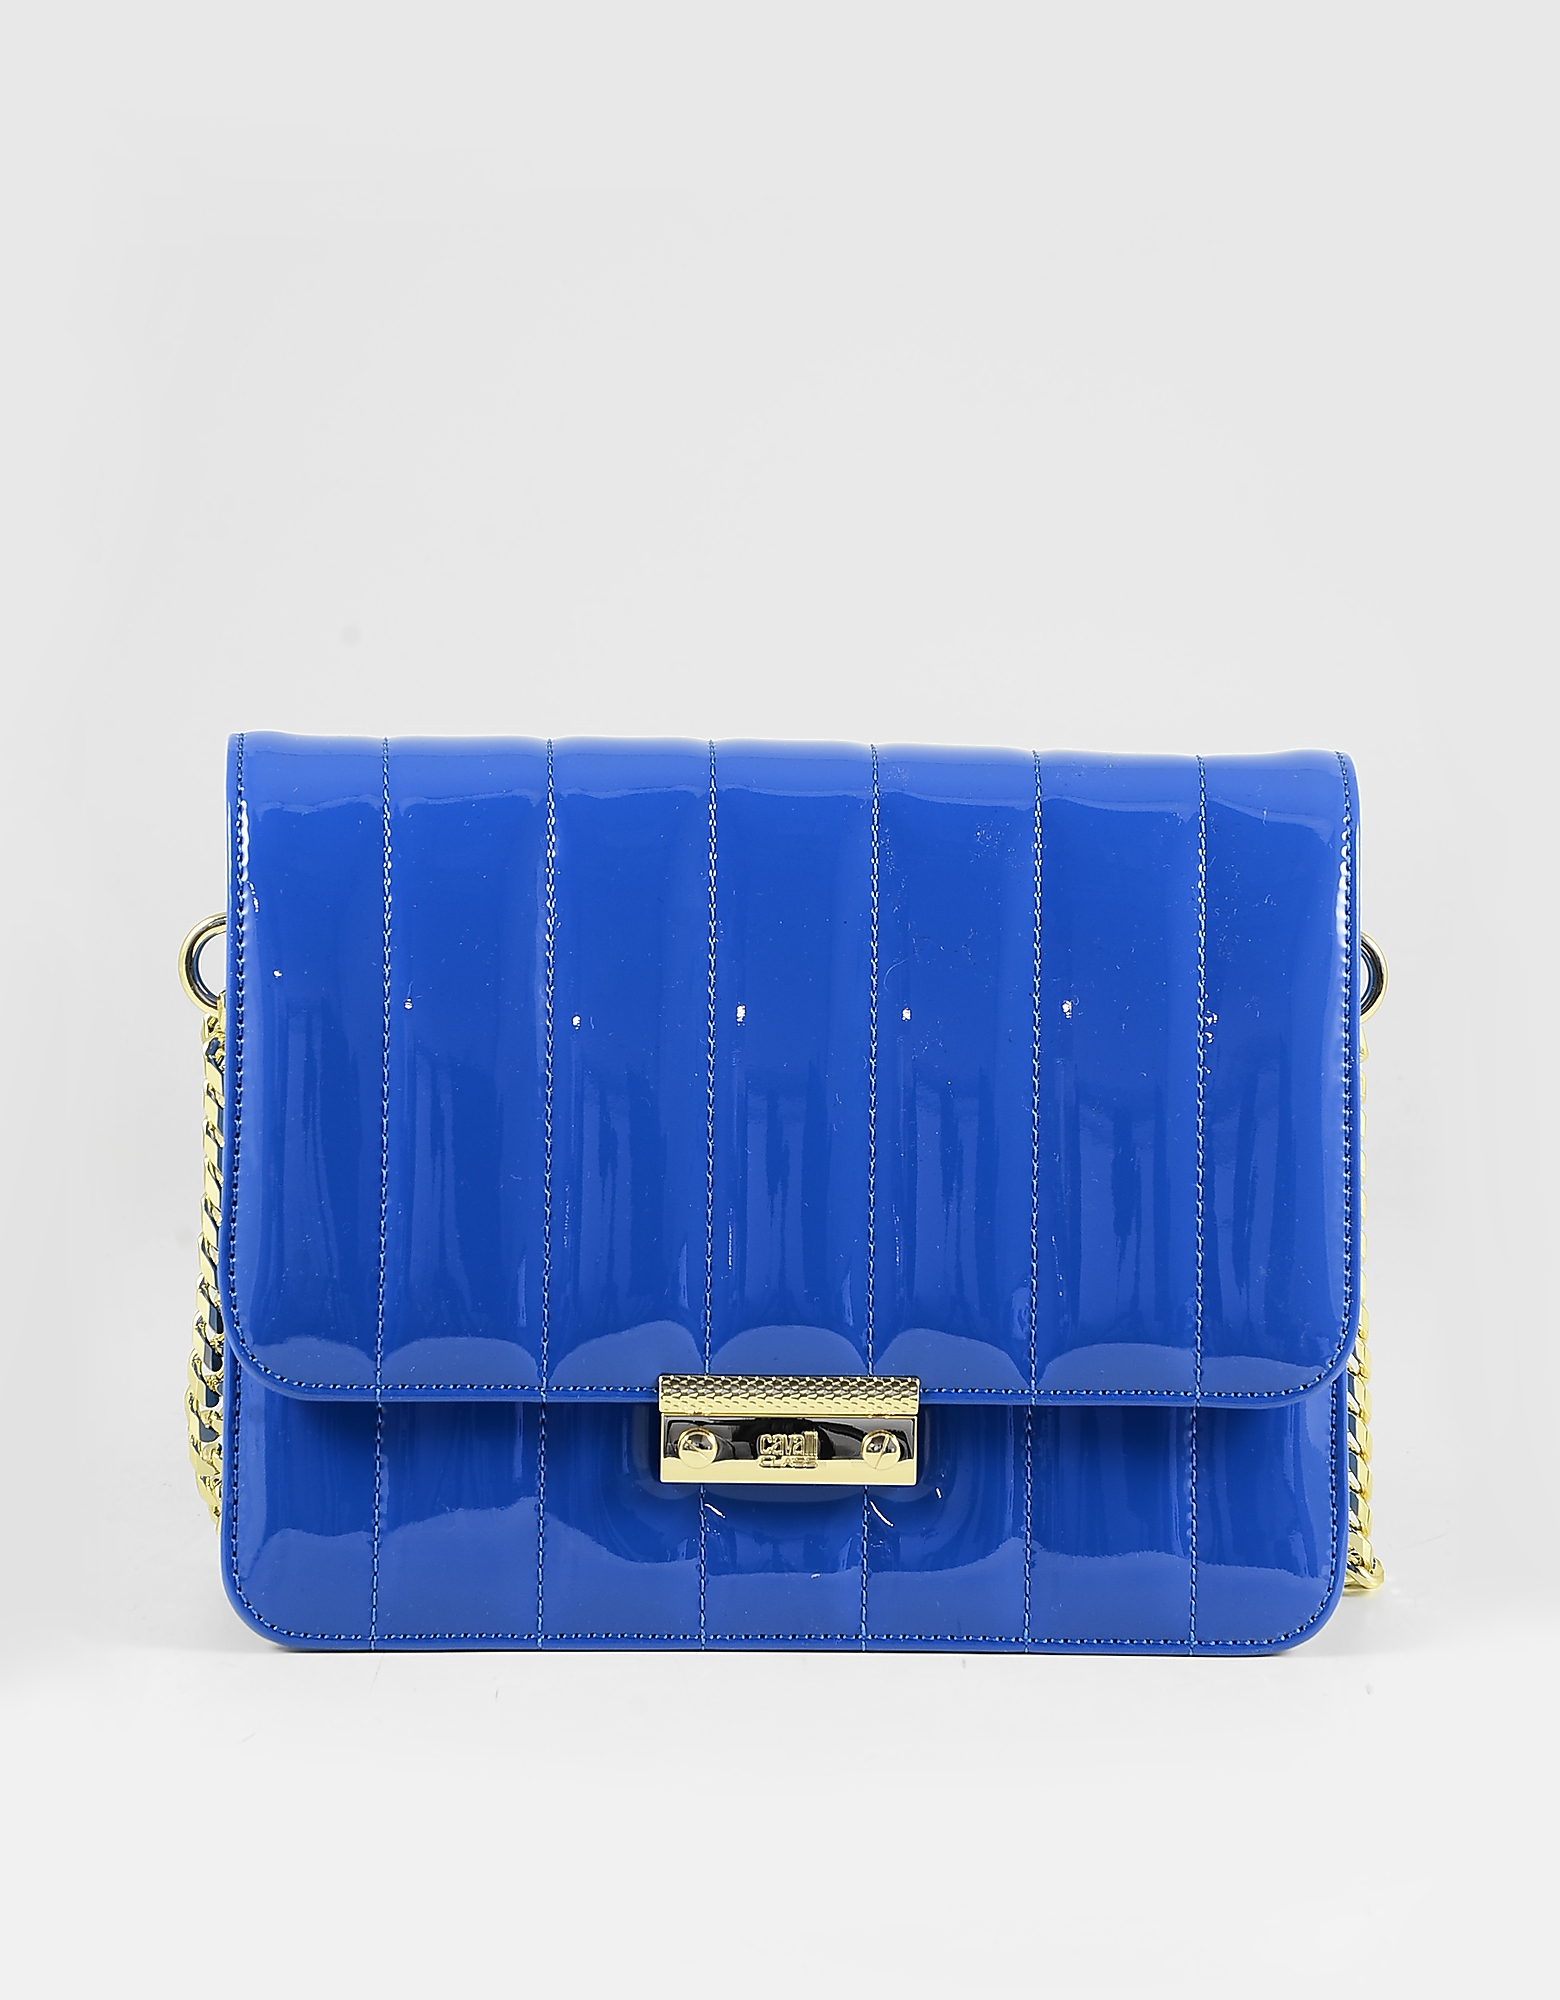 Class Roberto Cavalli Bright Blue Patent Eco-leather Shoulder Bag